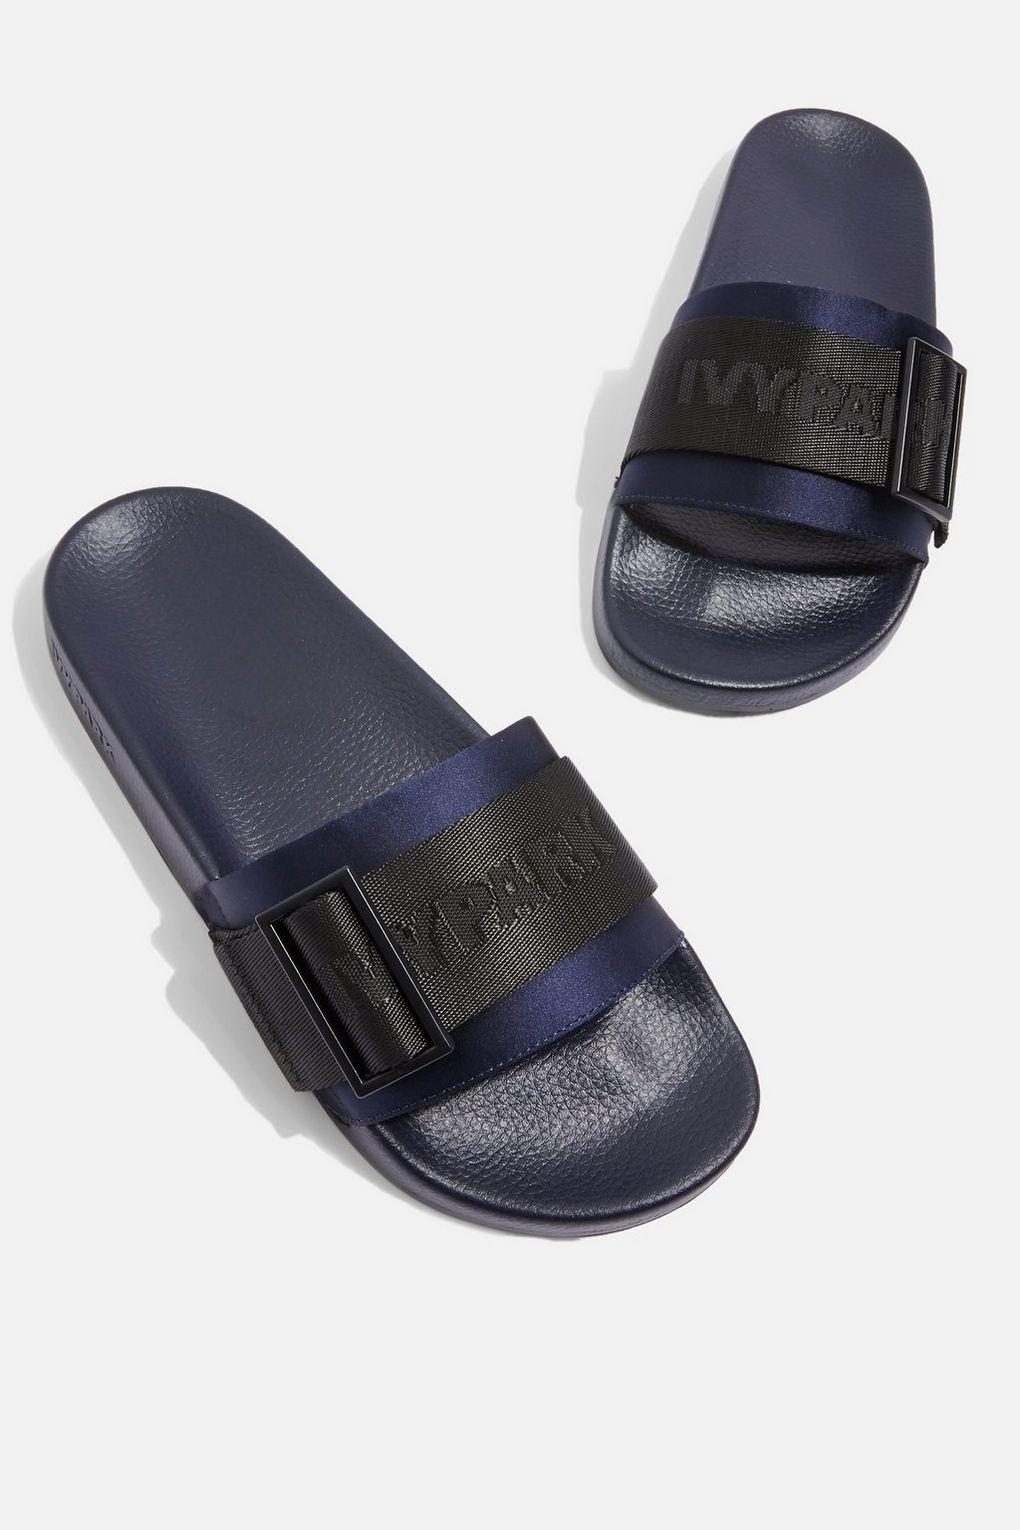 b0a613a48 Lyst - Ivy Park High Shine Sliders By in Blue